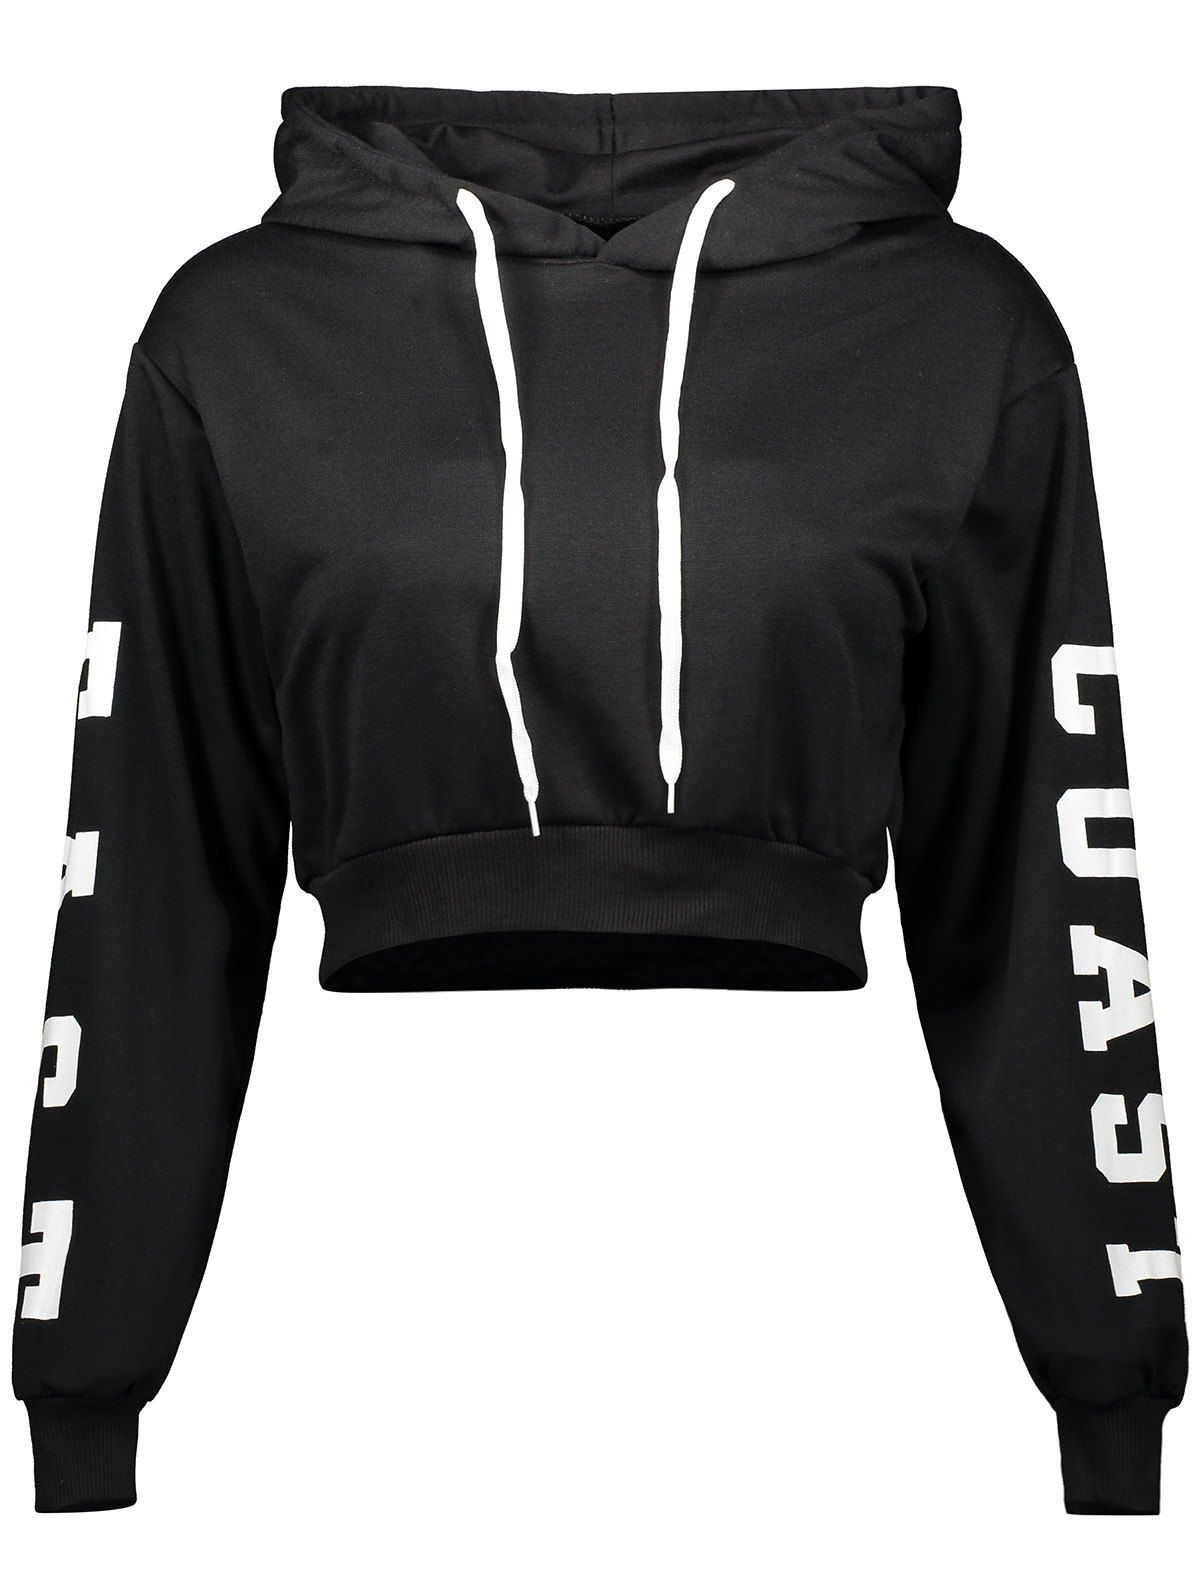 $14.52 Letter Cropped Pullover Hoodie   Pul   Mode vetement